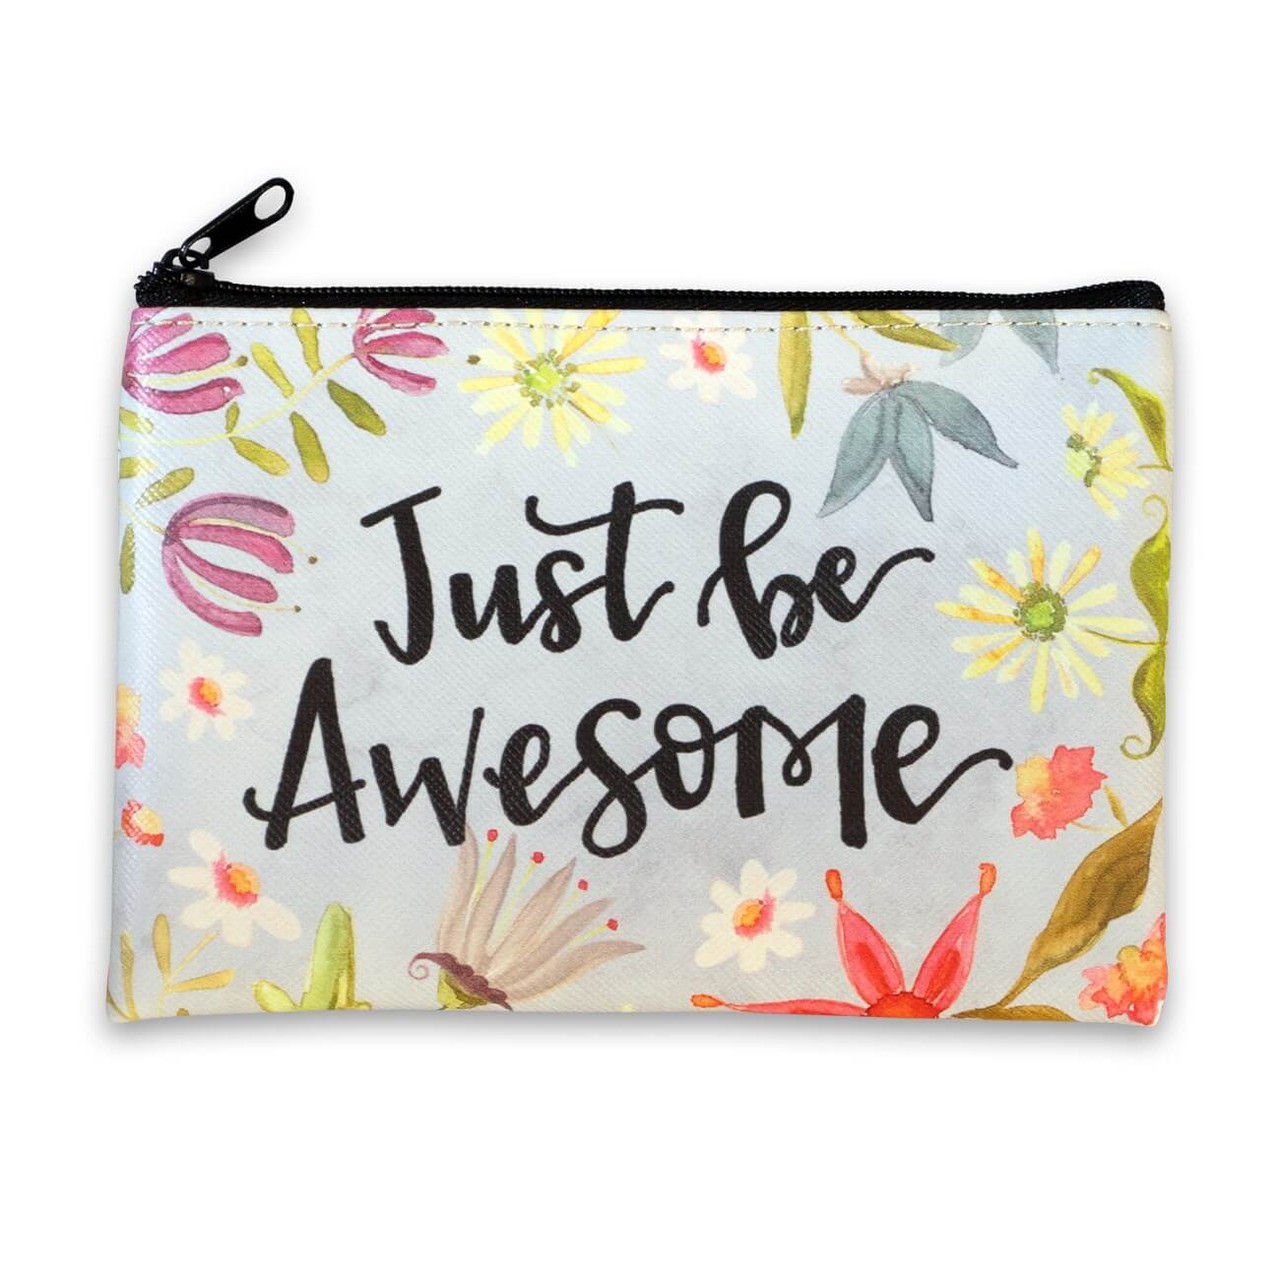 """The perfect small, fun, and functional accessory! This bag features cute floral artwork and sweet sentiments on coated canvas material. Featuring artwork by Kate Doucette.  Just be Awesome sentiment 6""""(W) x 4 1/2(H) Coated canvas exterior Lined interior"""